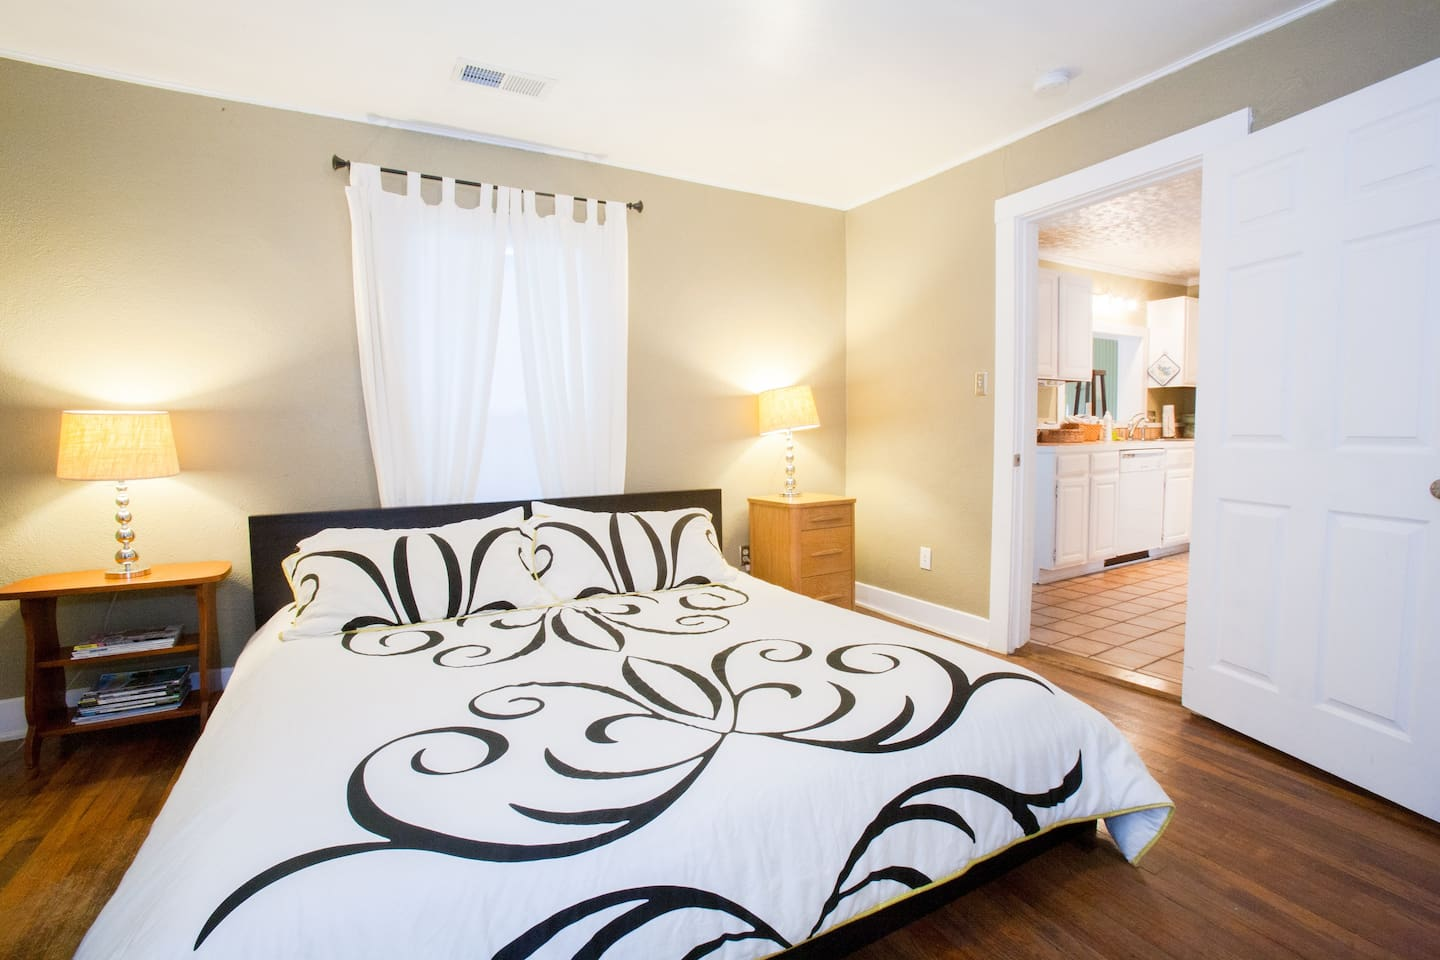 Welcome to your retreat!  After a fun day of exploring the SoCo drag or catching a show at the Continental Club, relax on this spacious king-sized mattress with new linens.